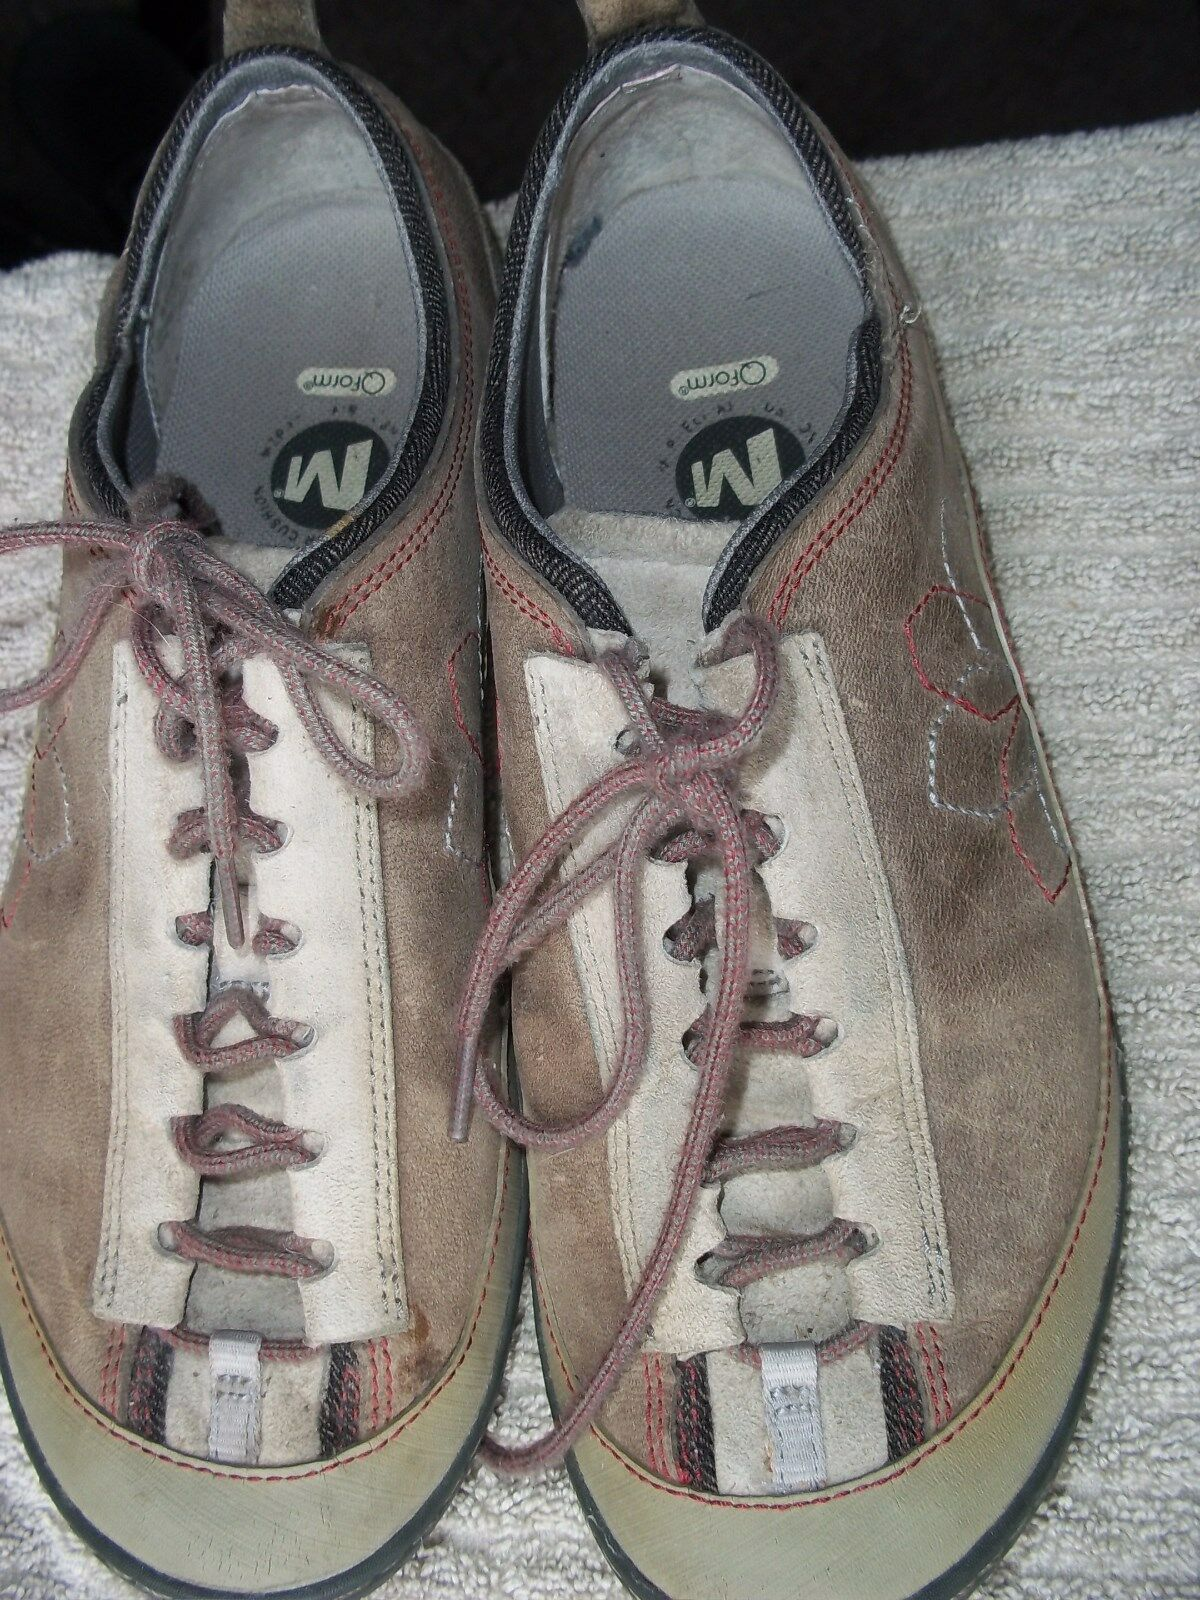 MERRELL Lace-up low-cut Leather shoes WOMENS Size 7.5 EUR 38